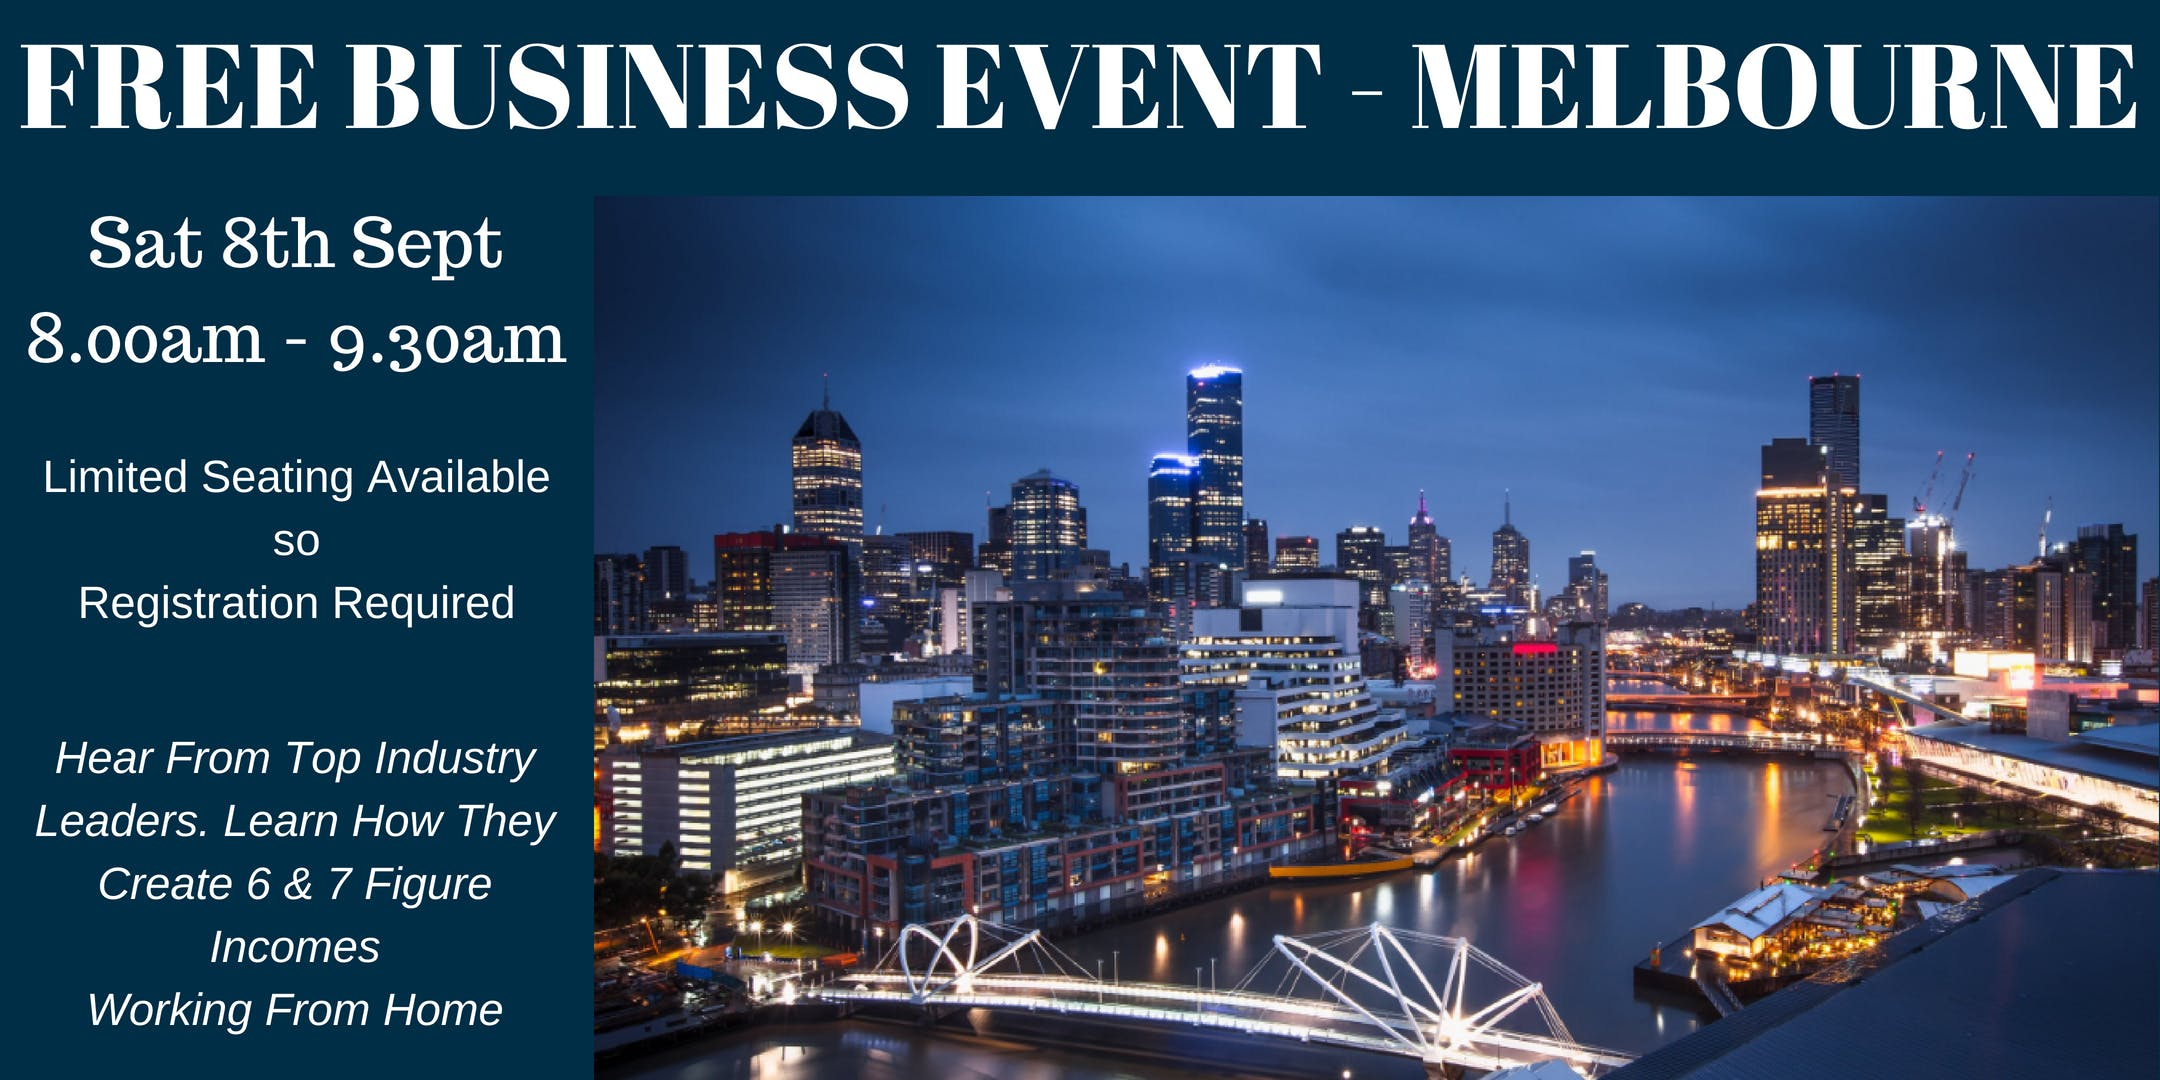 FREE BUSINESS EVENT